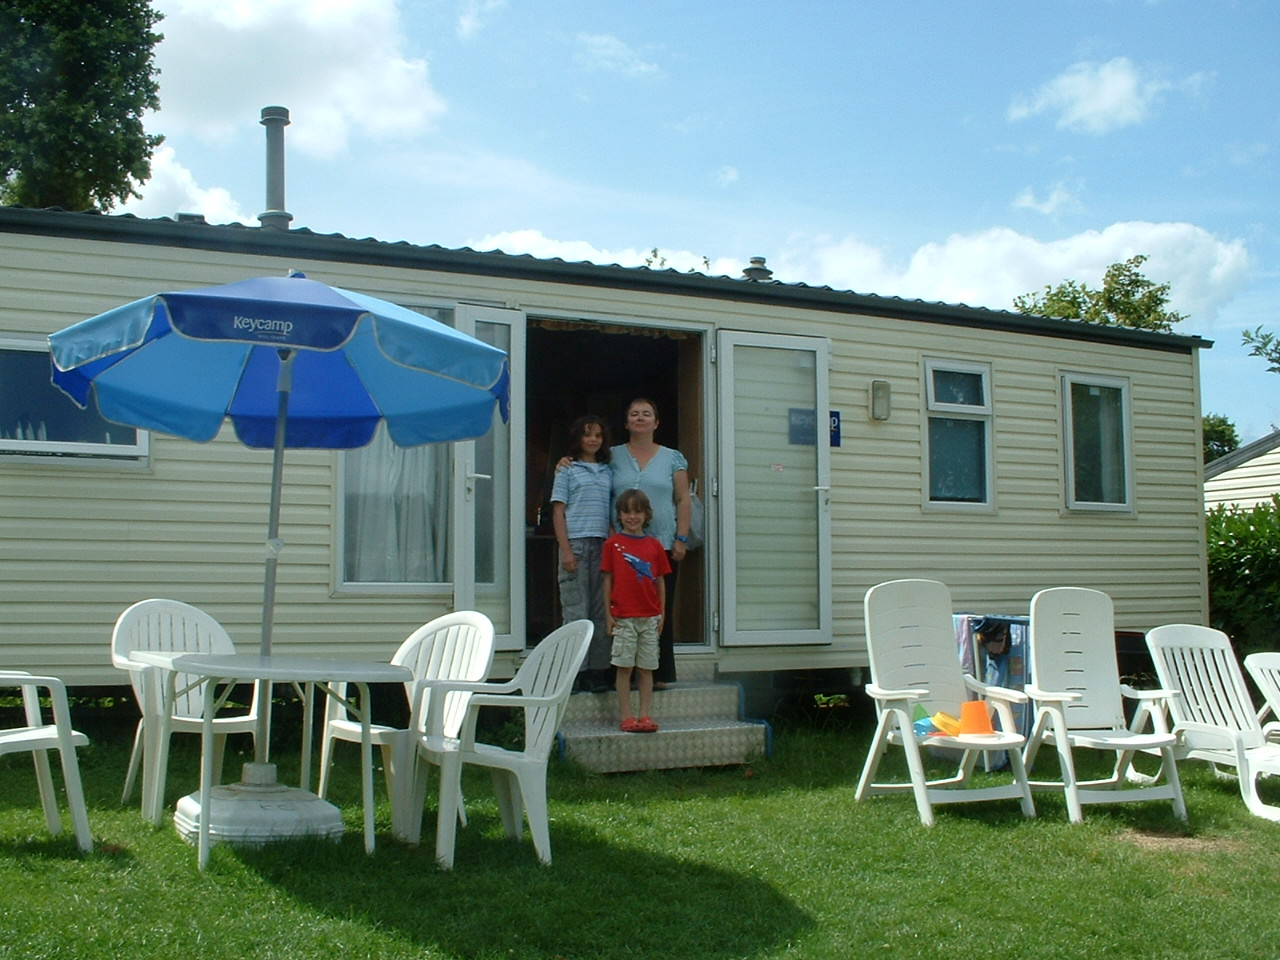 Keycamp's La Vallee mobile home